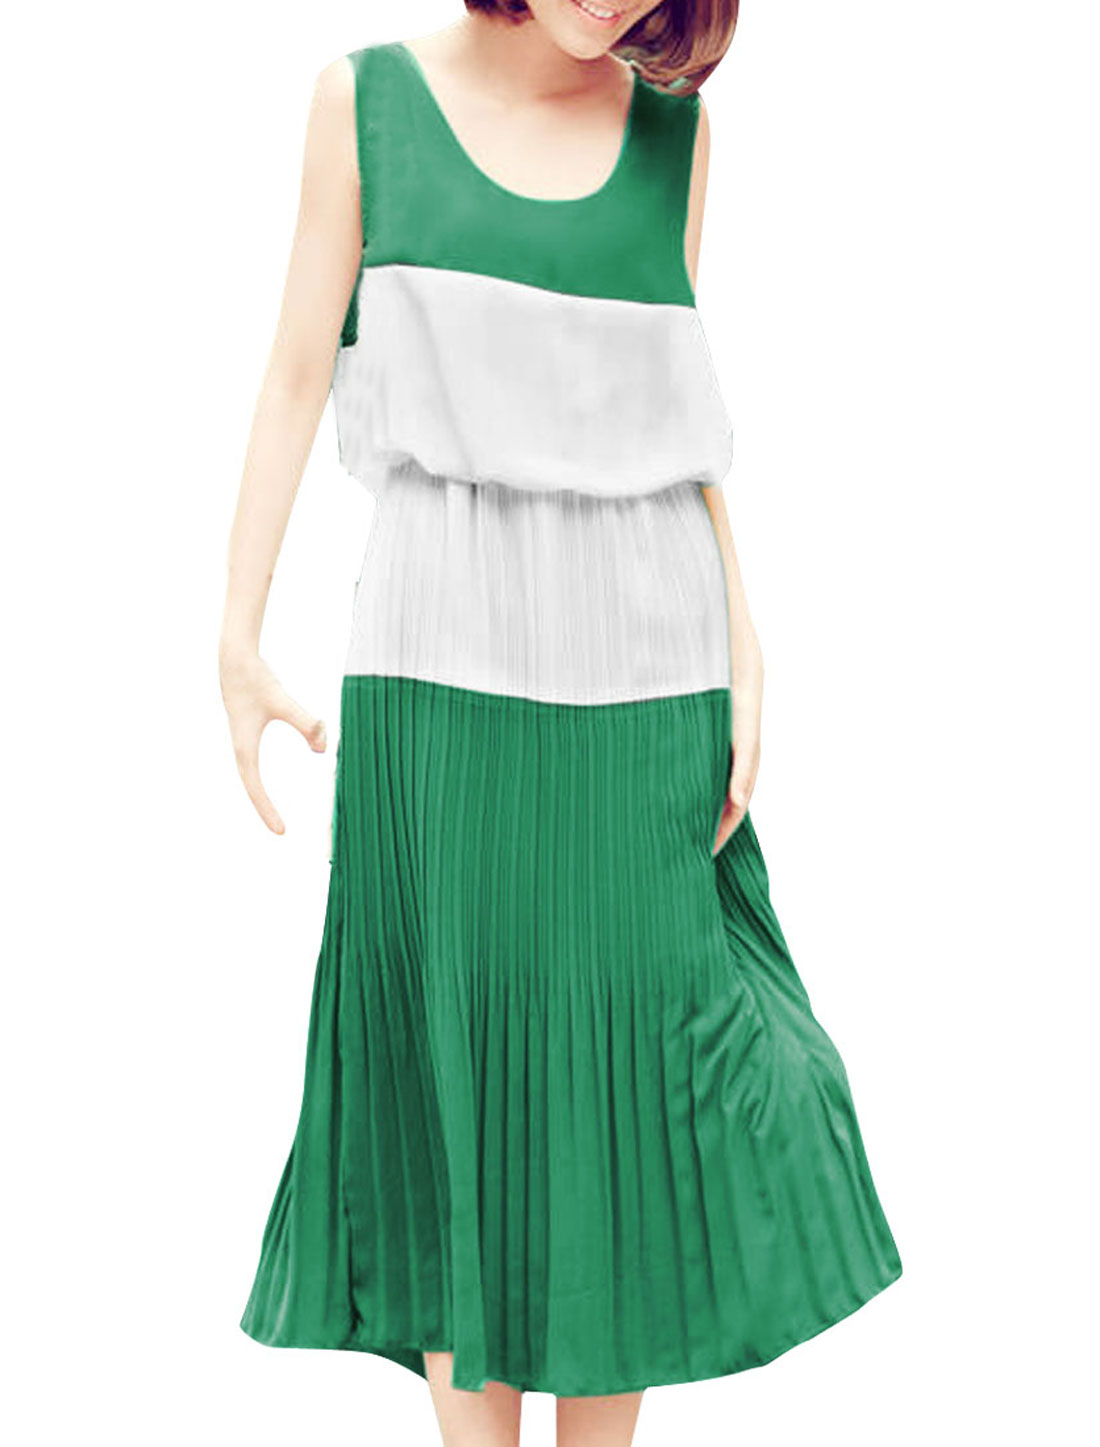 Woman Color Blocking Design Green White Splice Pleated Mid-Calf Dress XS